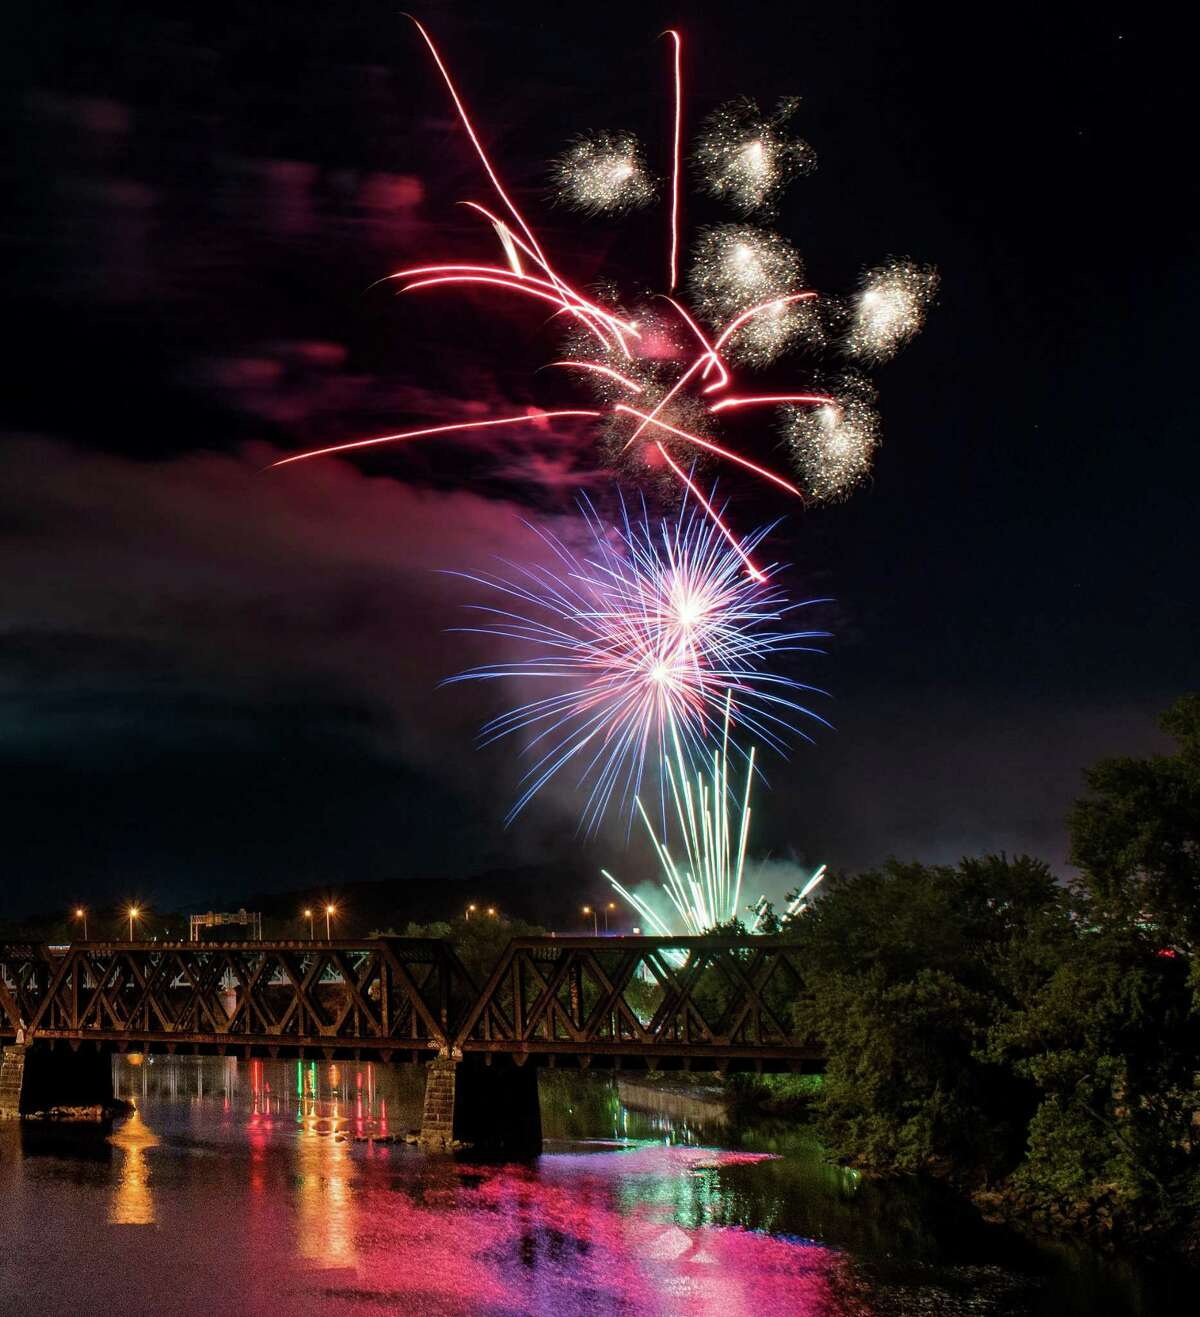 Shelton and Derby 4th of July celebration fireworks seen over the Housatonic River in Shelton, Conn. Shelton / Derby fireworks on Wednesday, July 3, 2019 in Shelton, Conn.